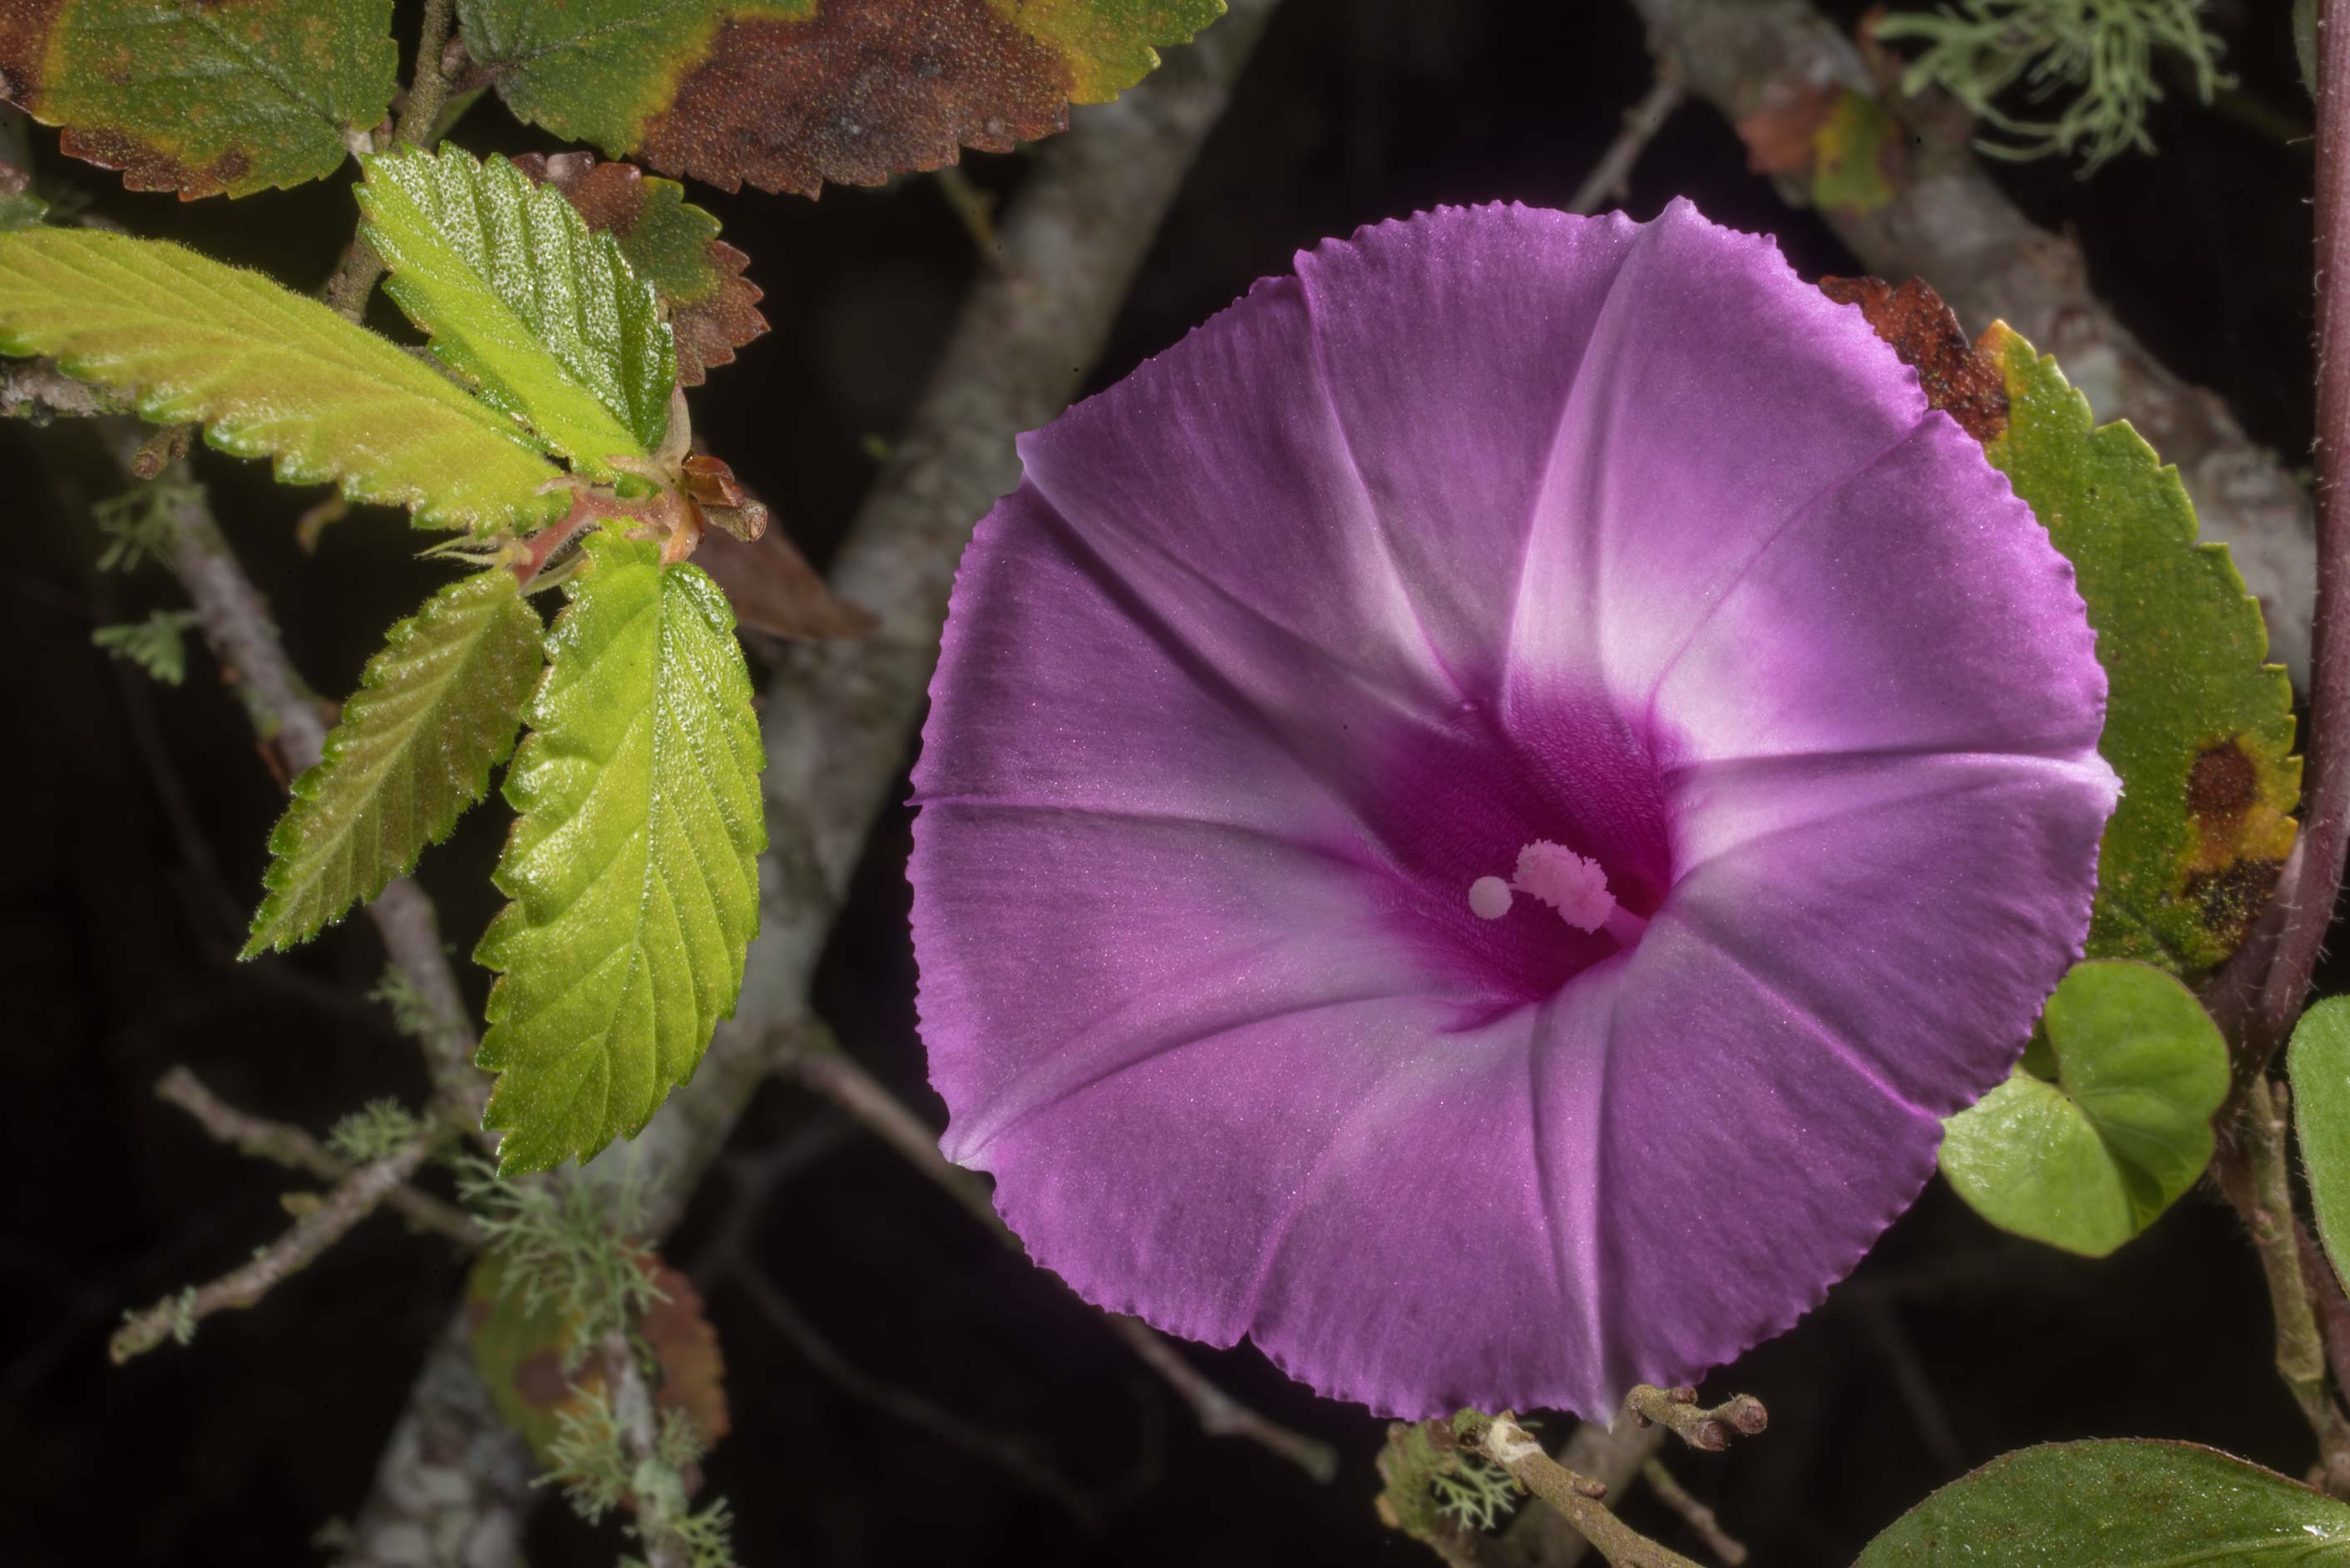 Flower of Morning glory (tievine, Ipomoea...State Historic Site. Washington, Texas